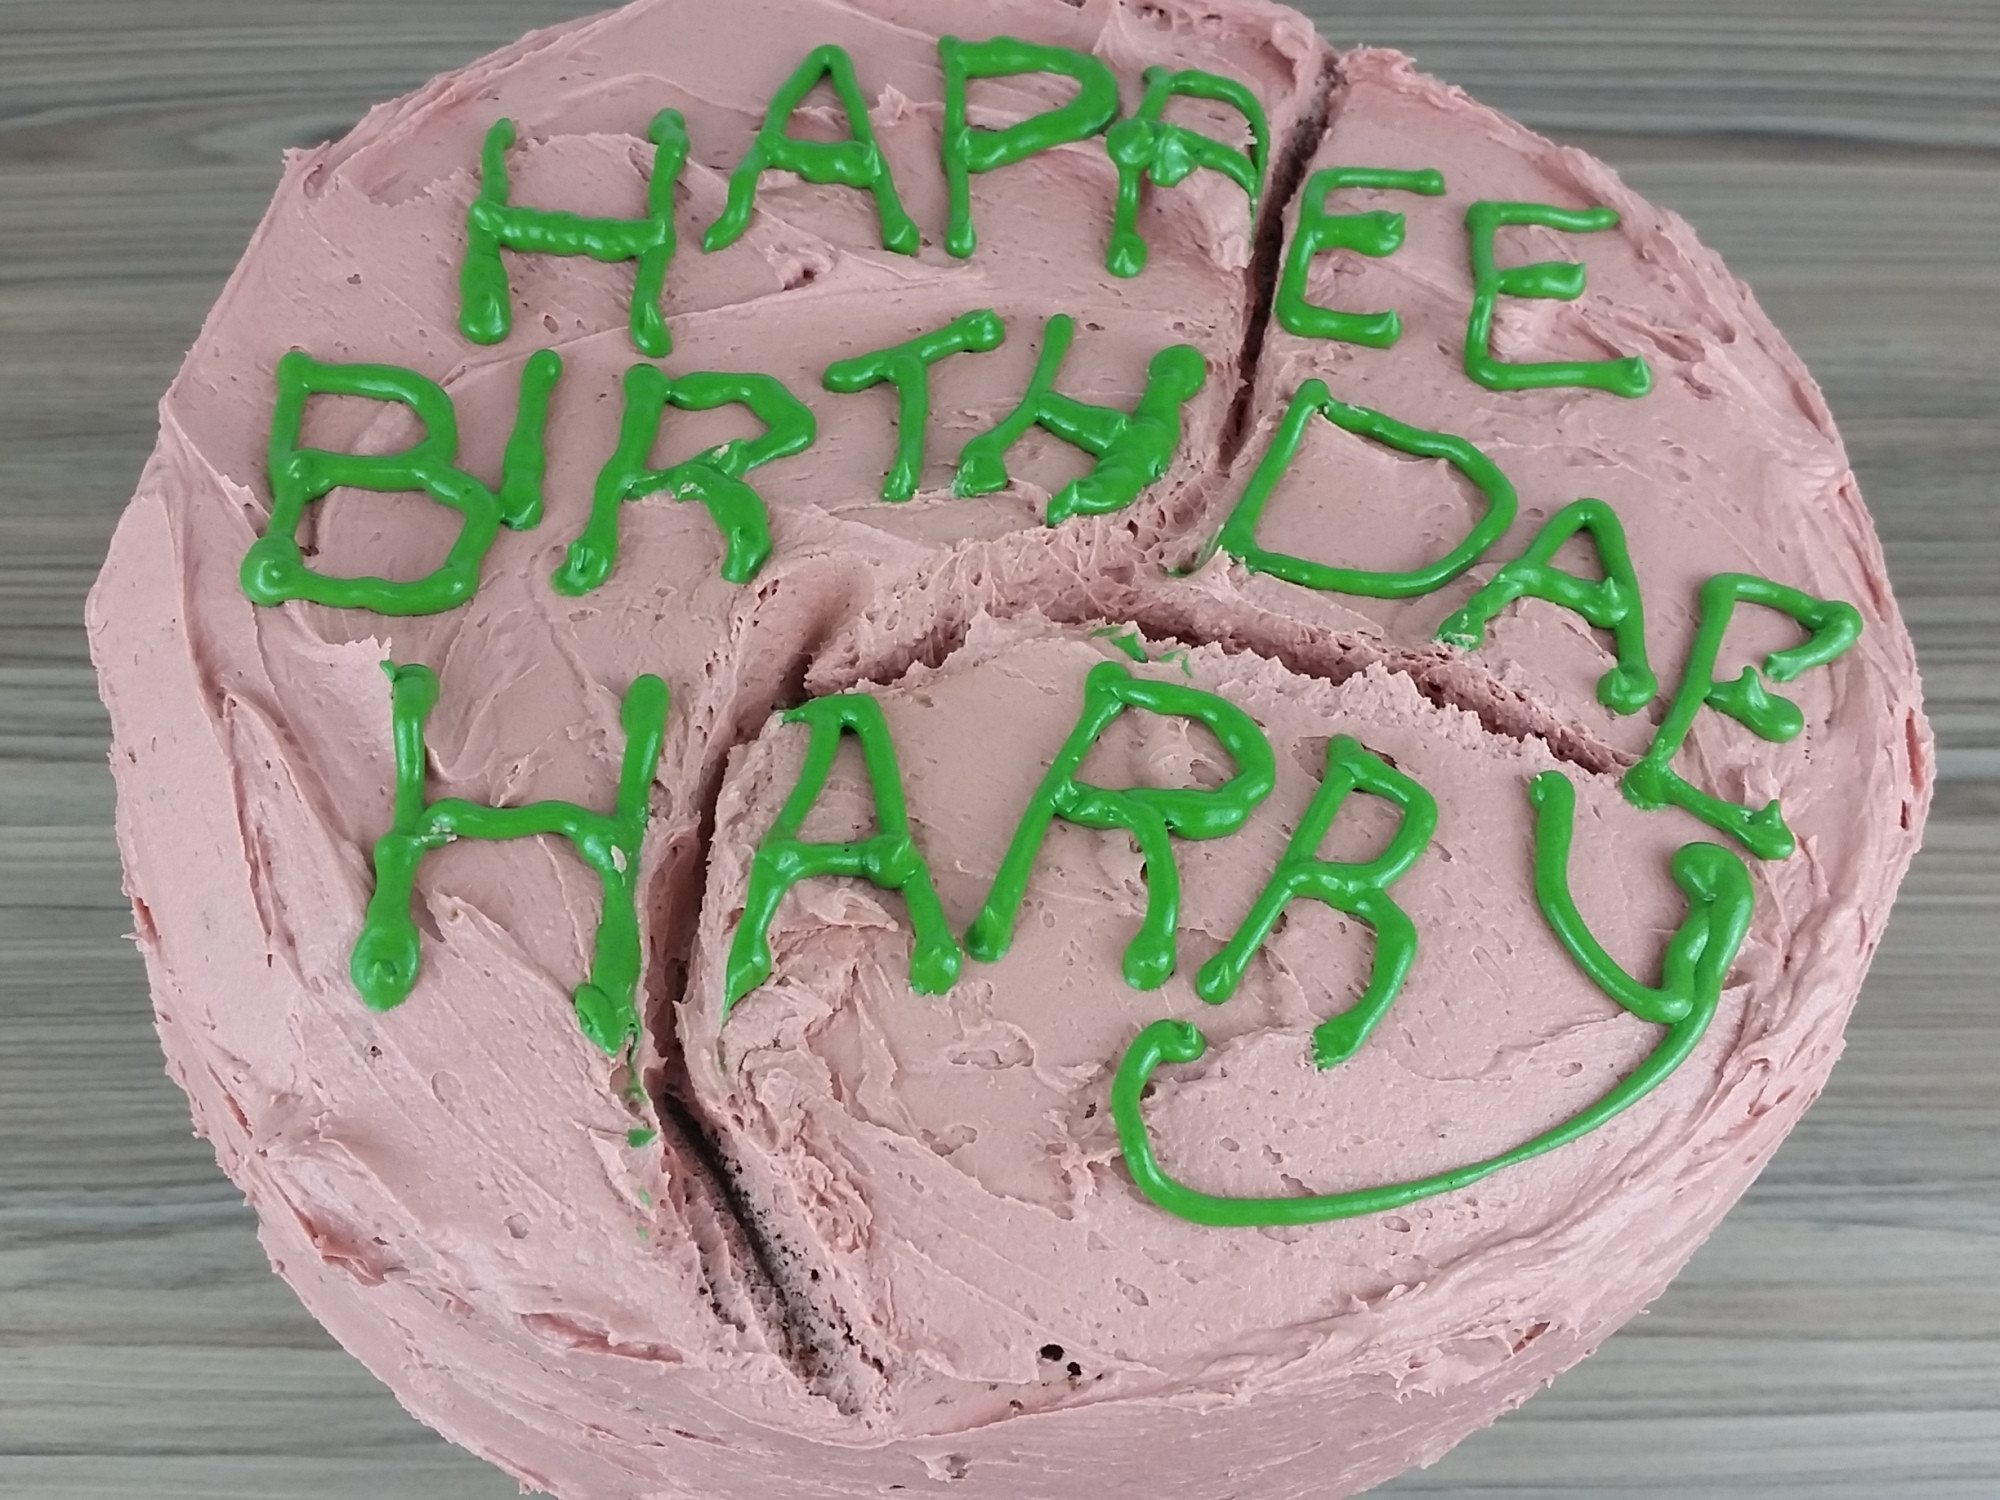 Best ideas about Hagrid Birthday Cake . Save or Pin Harry Potter's Birthday Cake from Hagrid – CarlyToffle Now.